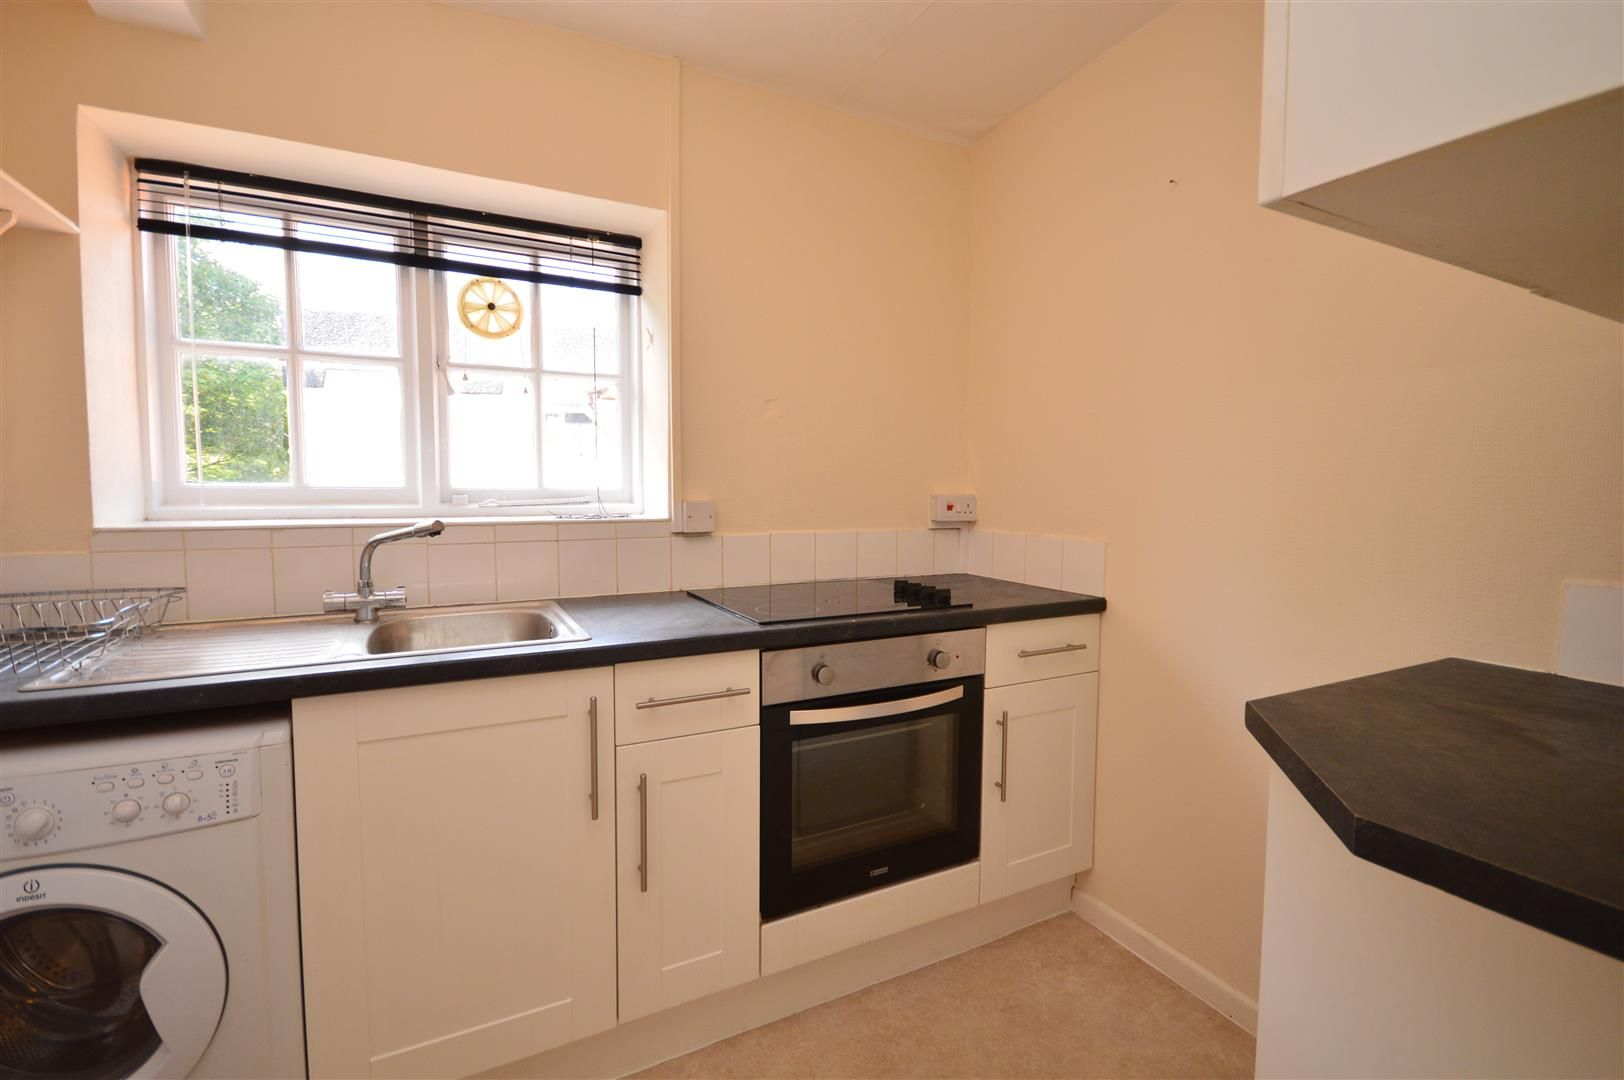 1 bed flat to rent 2